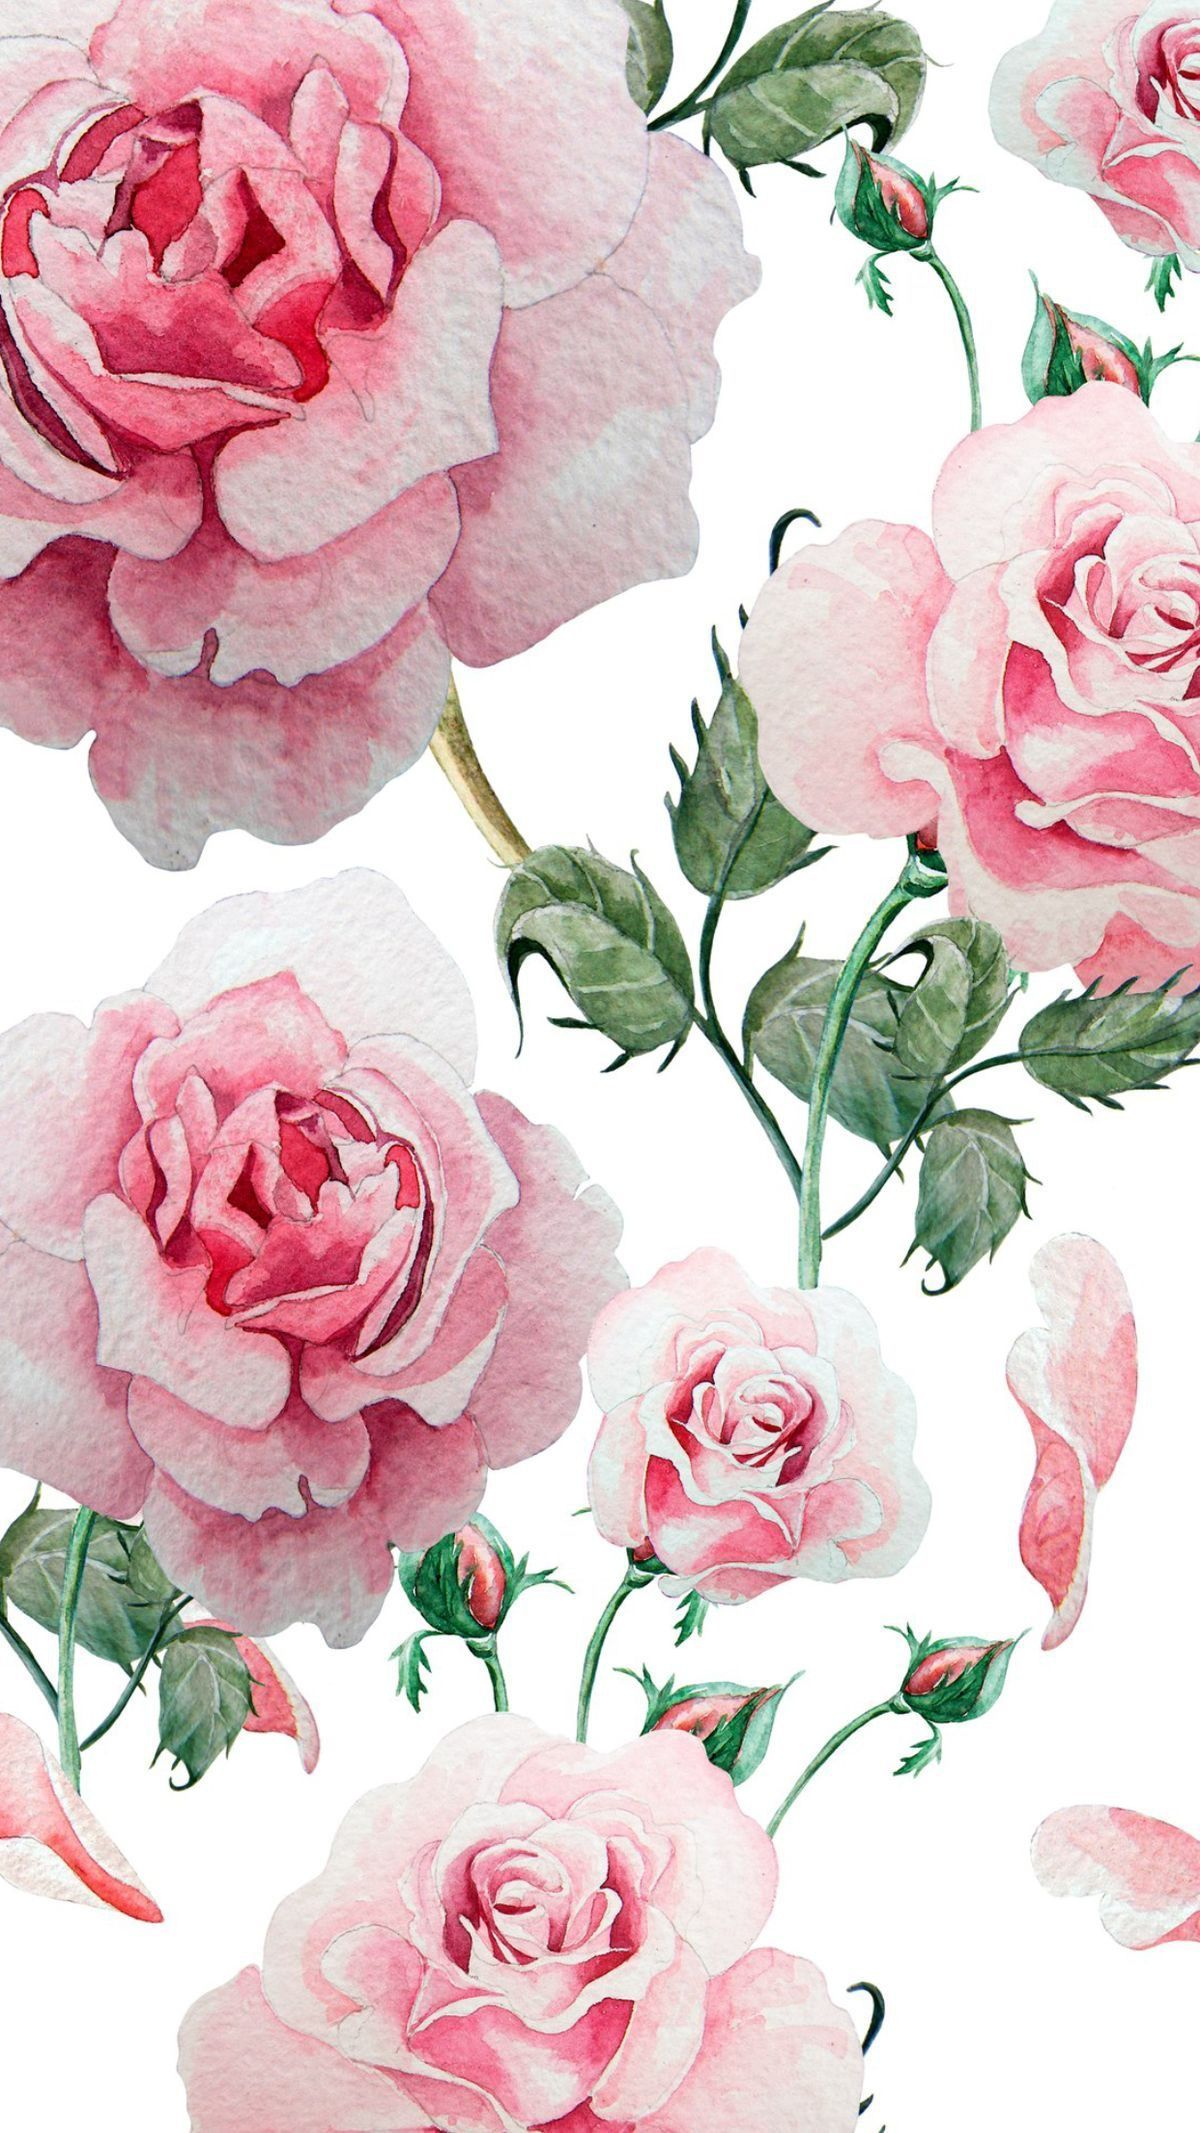 1200x2133 iphone wallpaper tumblr roses » 4K Pictures   4K Pictures [Full HQ ...